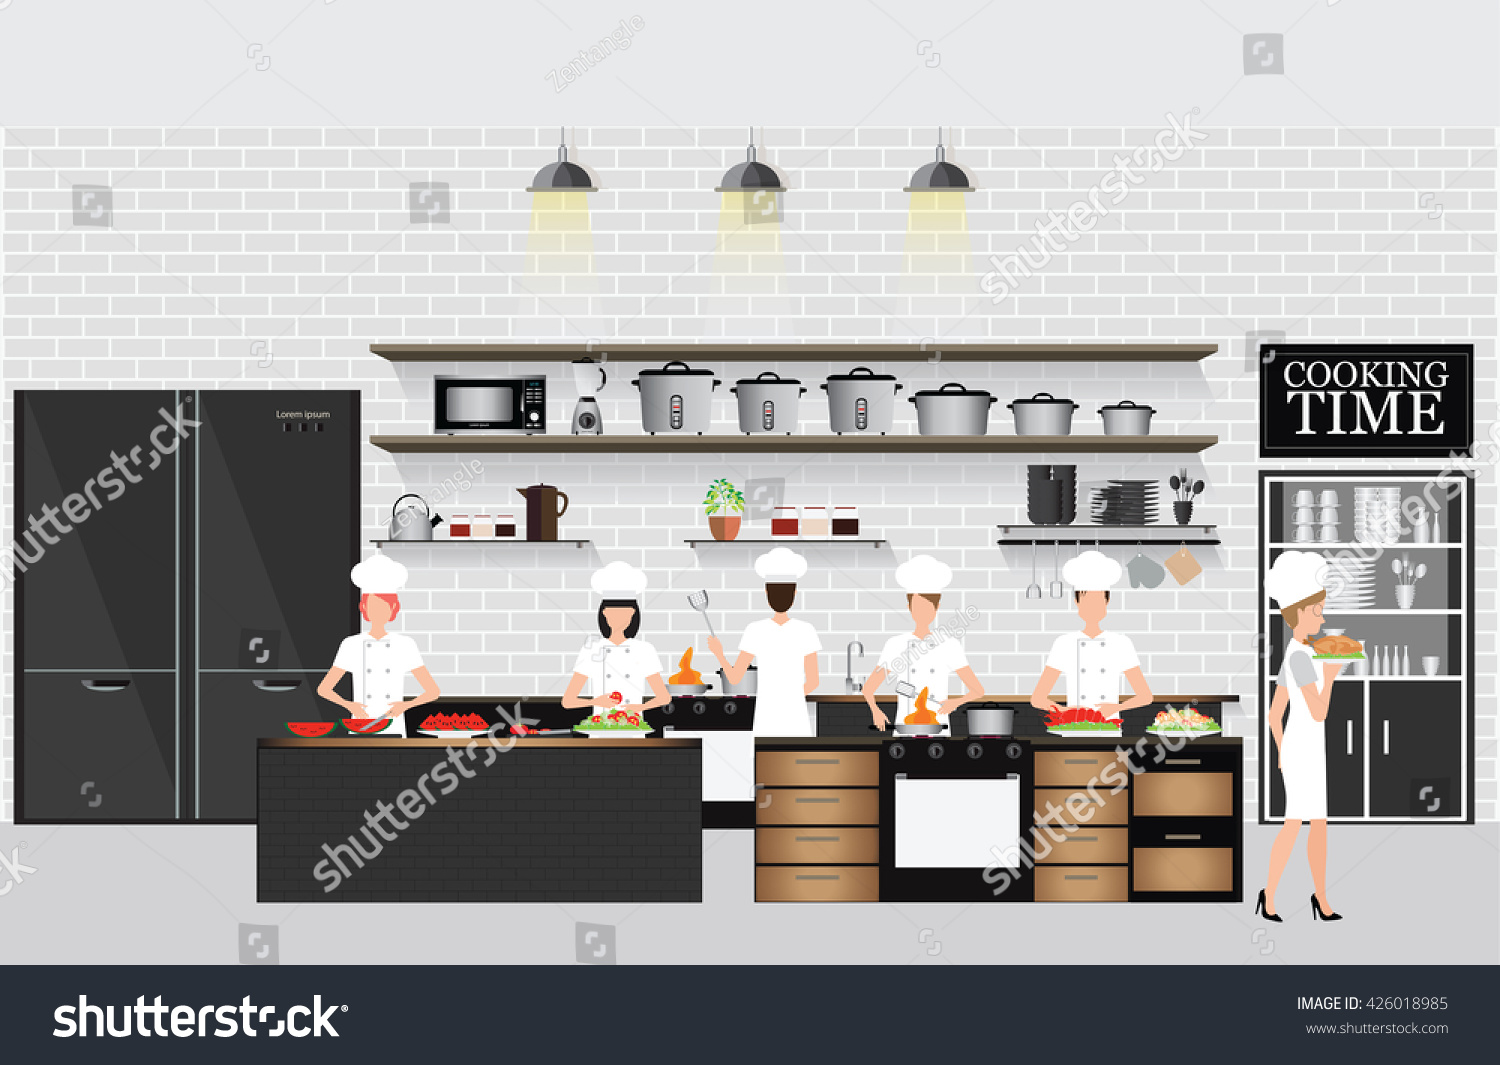 Restaurant Kitchen Illustration chefs cooking table restaurant kitchen interior stock vector